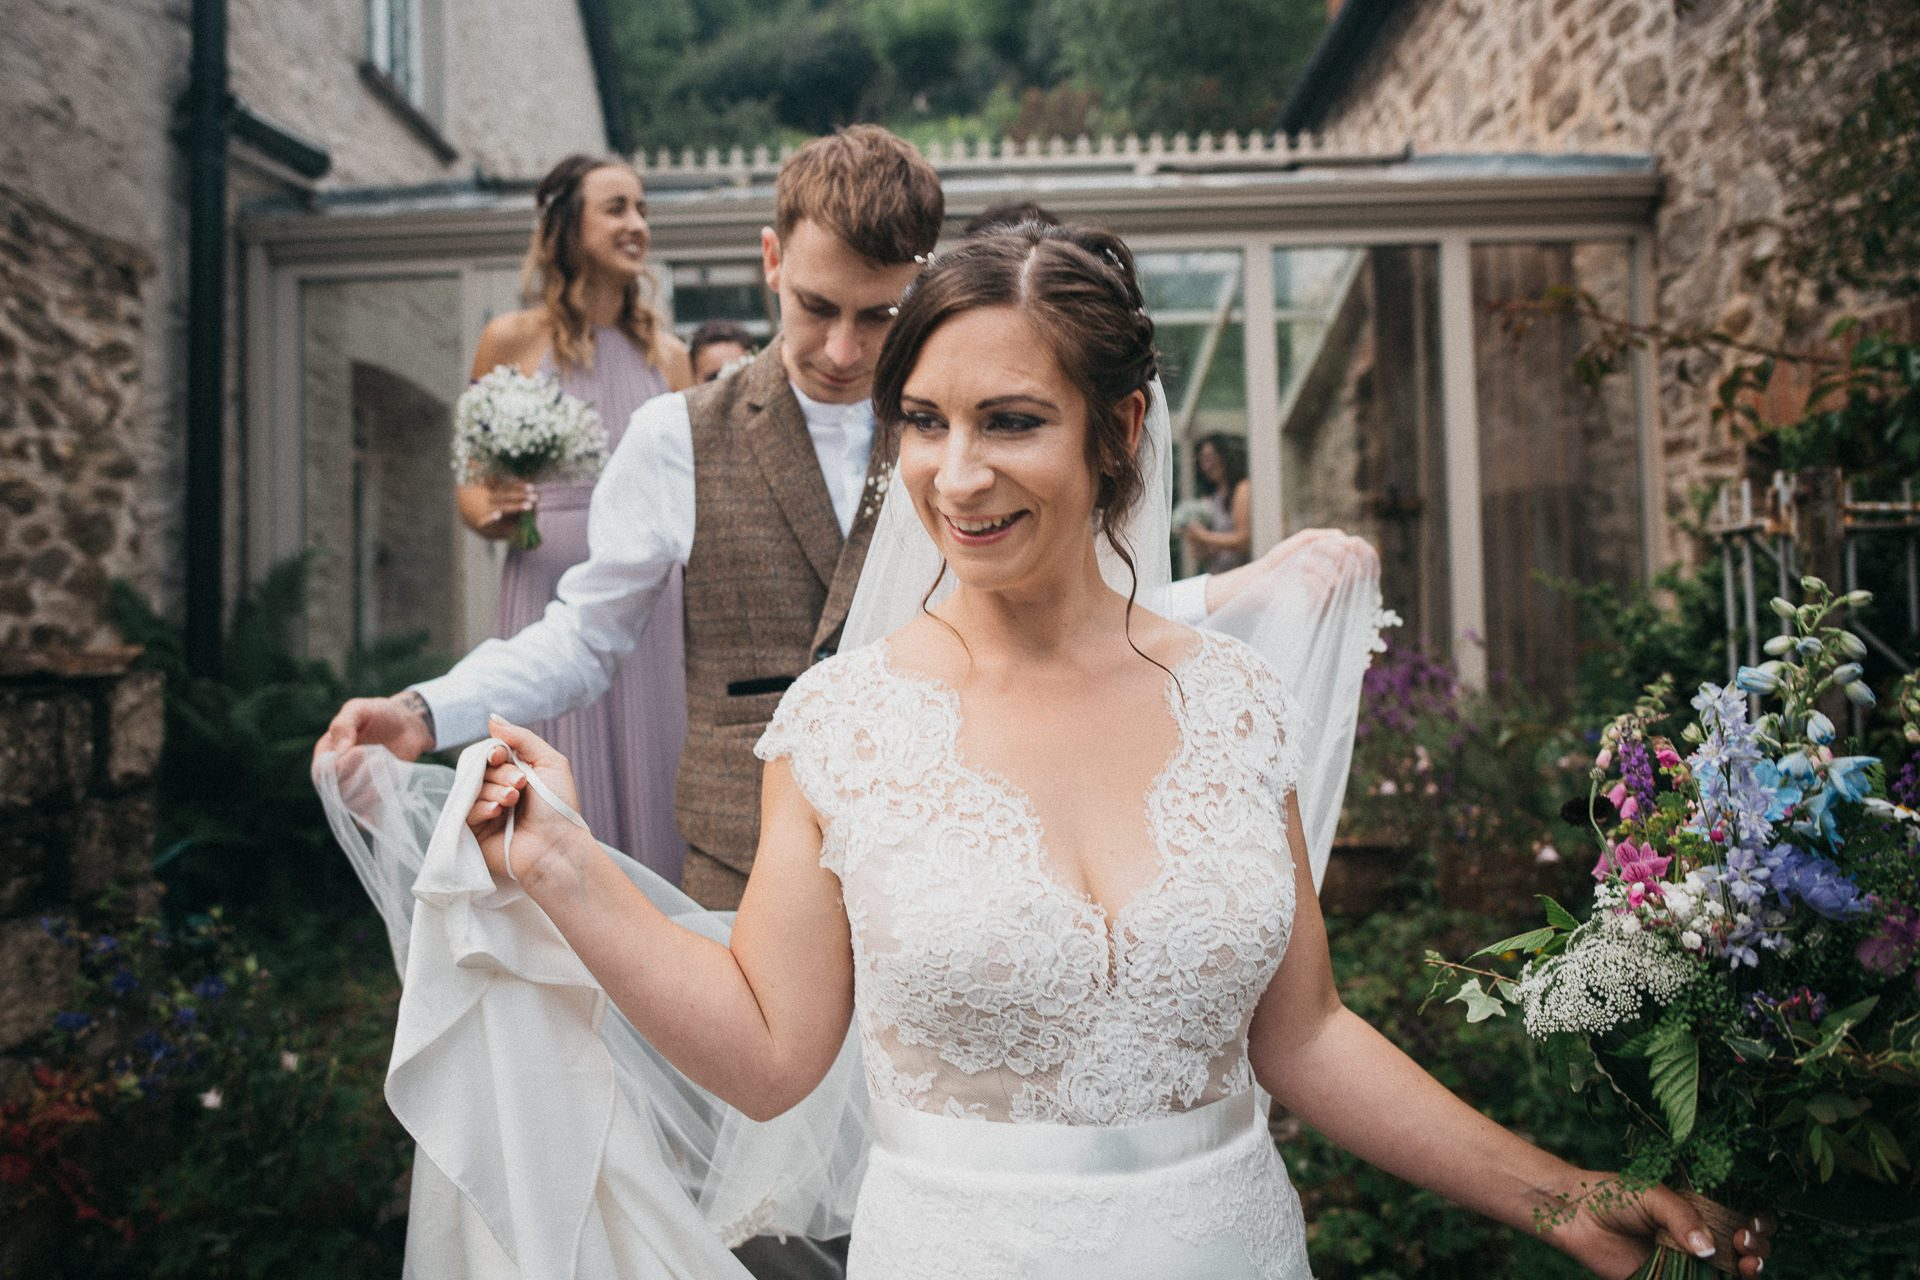 0065-DEVON-SOMERSET-WEDDING-PHOTOGRAPHER-0293-BEST-OF-2019-LOUISE-MAY-DEVON-SOMERSET-WEDDING-PHOTOGRAPHY-LM2_8751